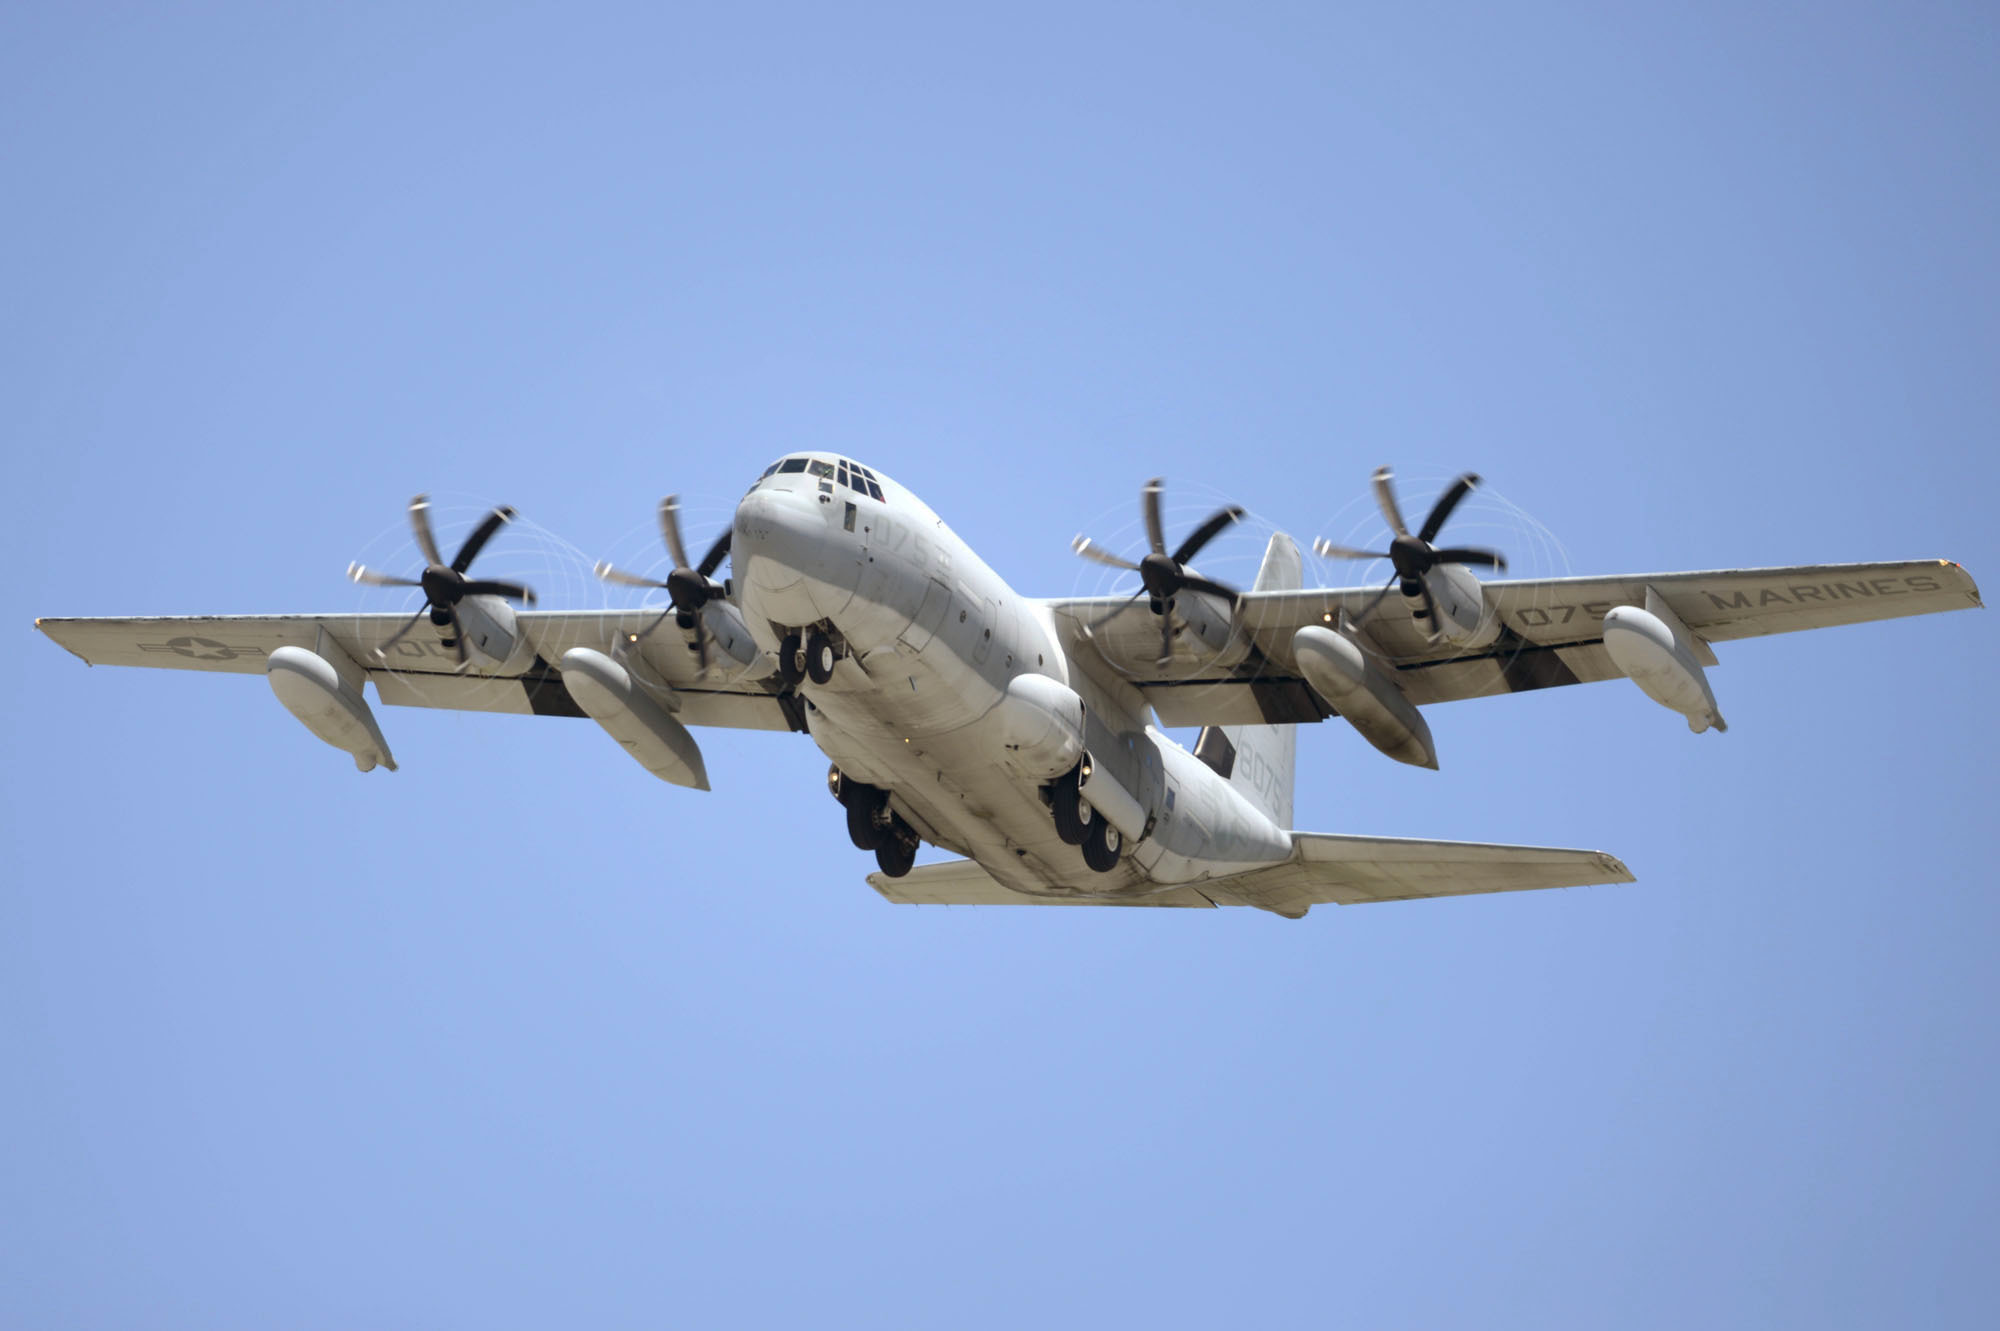 """This July, 2014, photo shows a U.S. Marine Corps' KC-130 refueling plane in Ginowan city, Okinawa, southwestern Japan. A search is under way off for crew members from two Marine Corps planes, a F/A-18 and a refueling plane, involved in what officials called a """"mishap"""" off the coast of Japan, Thursday, Dec. 6, 2018. (Yuki Sato/Kyodo News via AP)"""